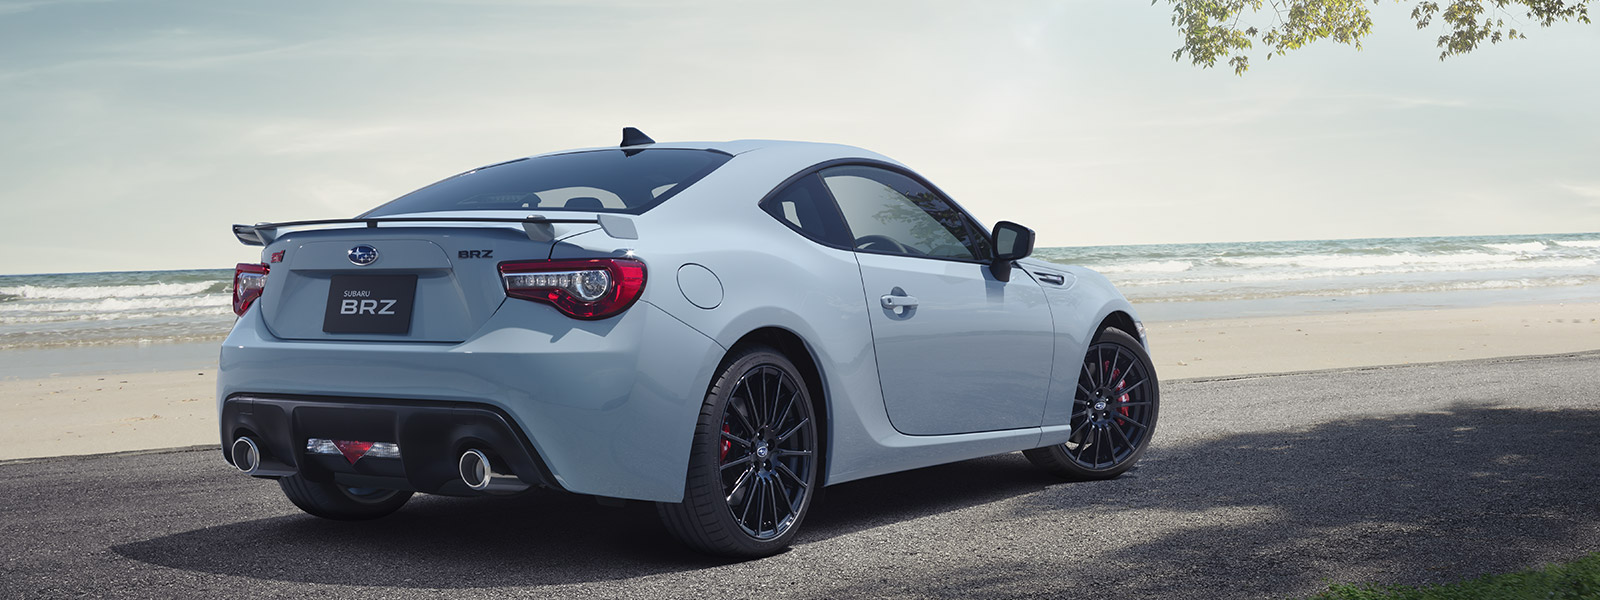 2018 Subaru Brz Sti New Car Release Date And Review 2018